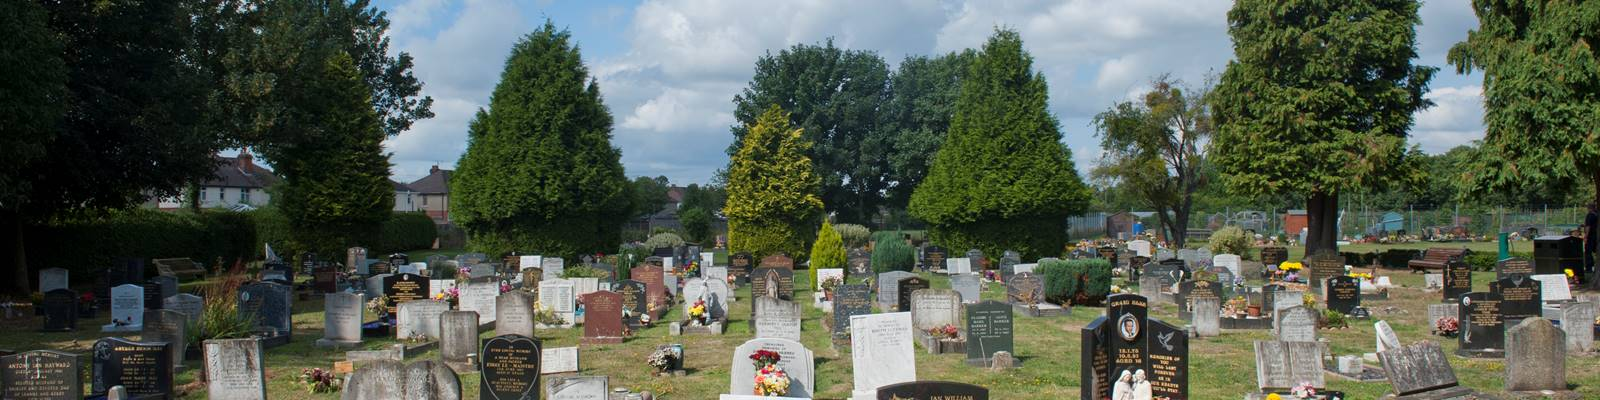 Eastleigh_Brookwood_Cemetery13.jpg